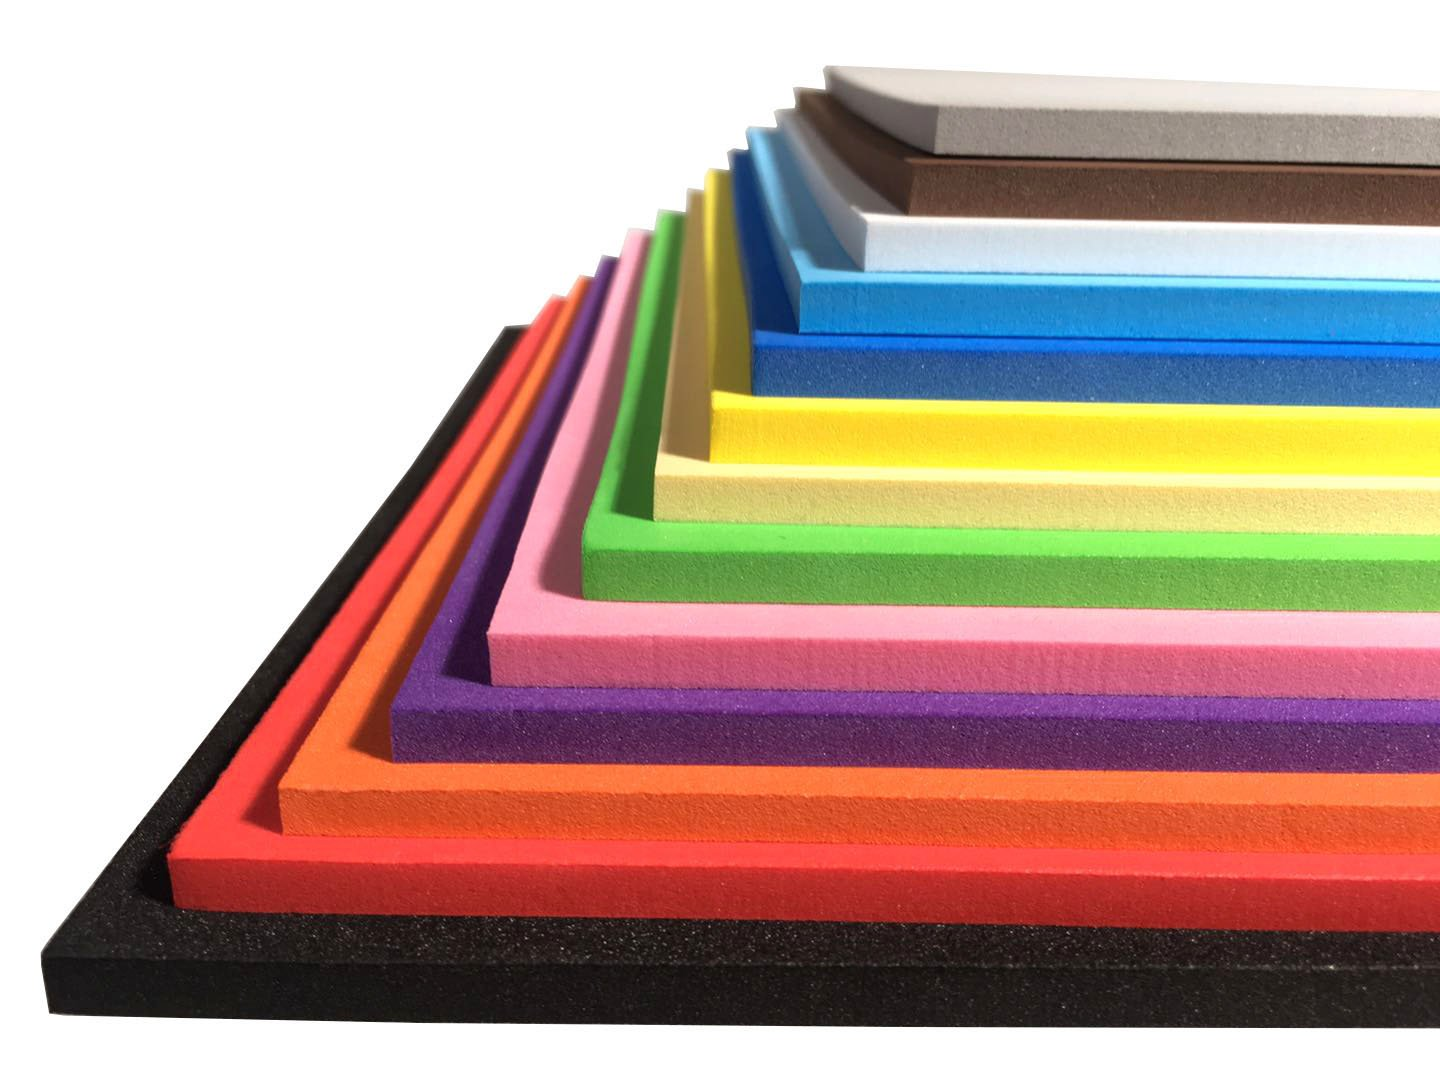 Extra Thick! - Craft Foam Sheets - EVA Material - 13 Colors 9.6×9.6 inches - 3mm/5mm/7mm Thickness